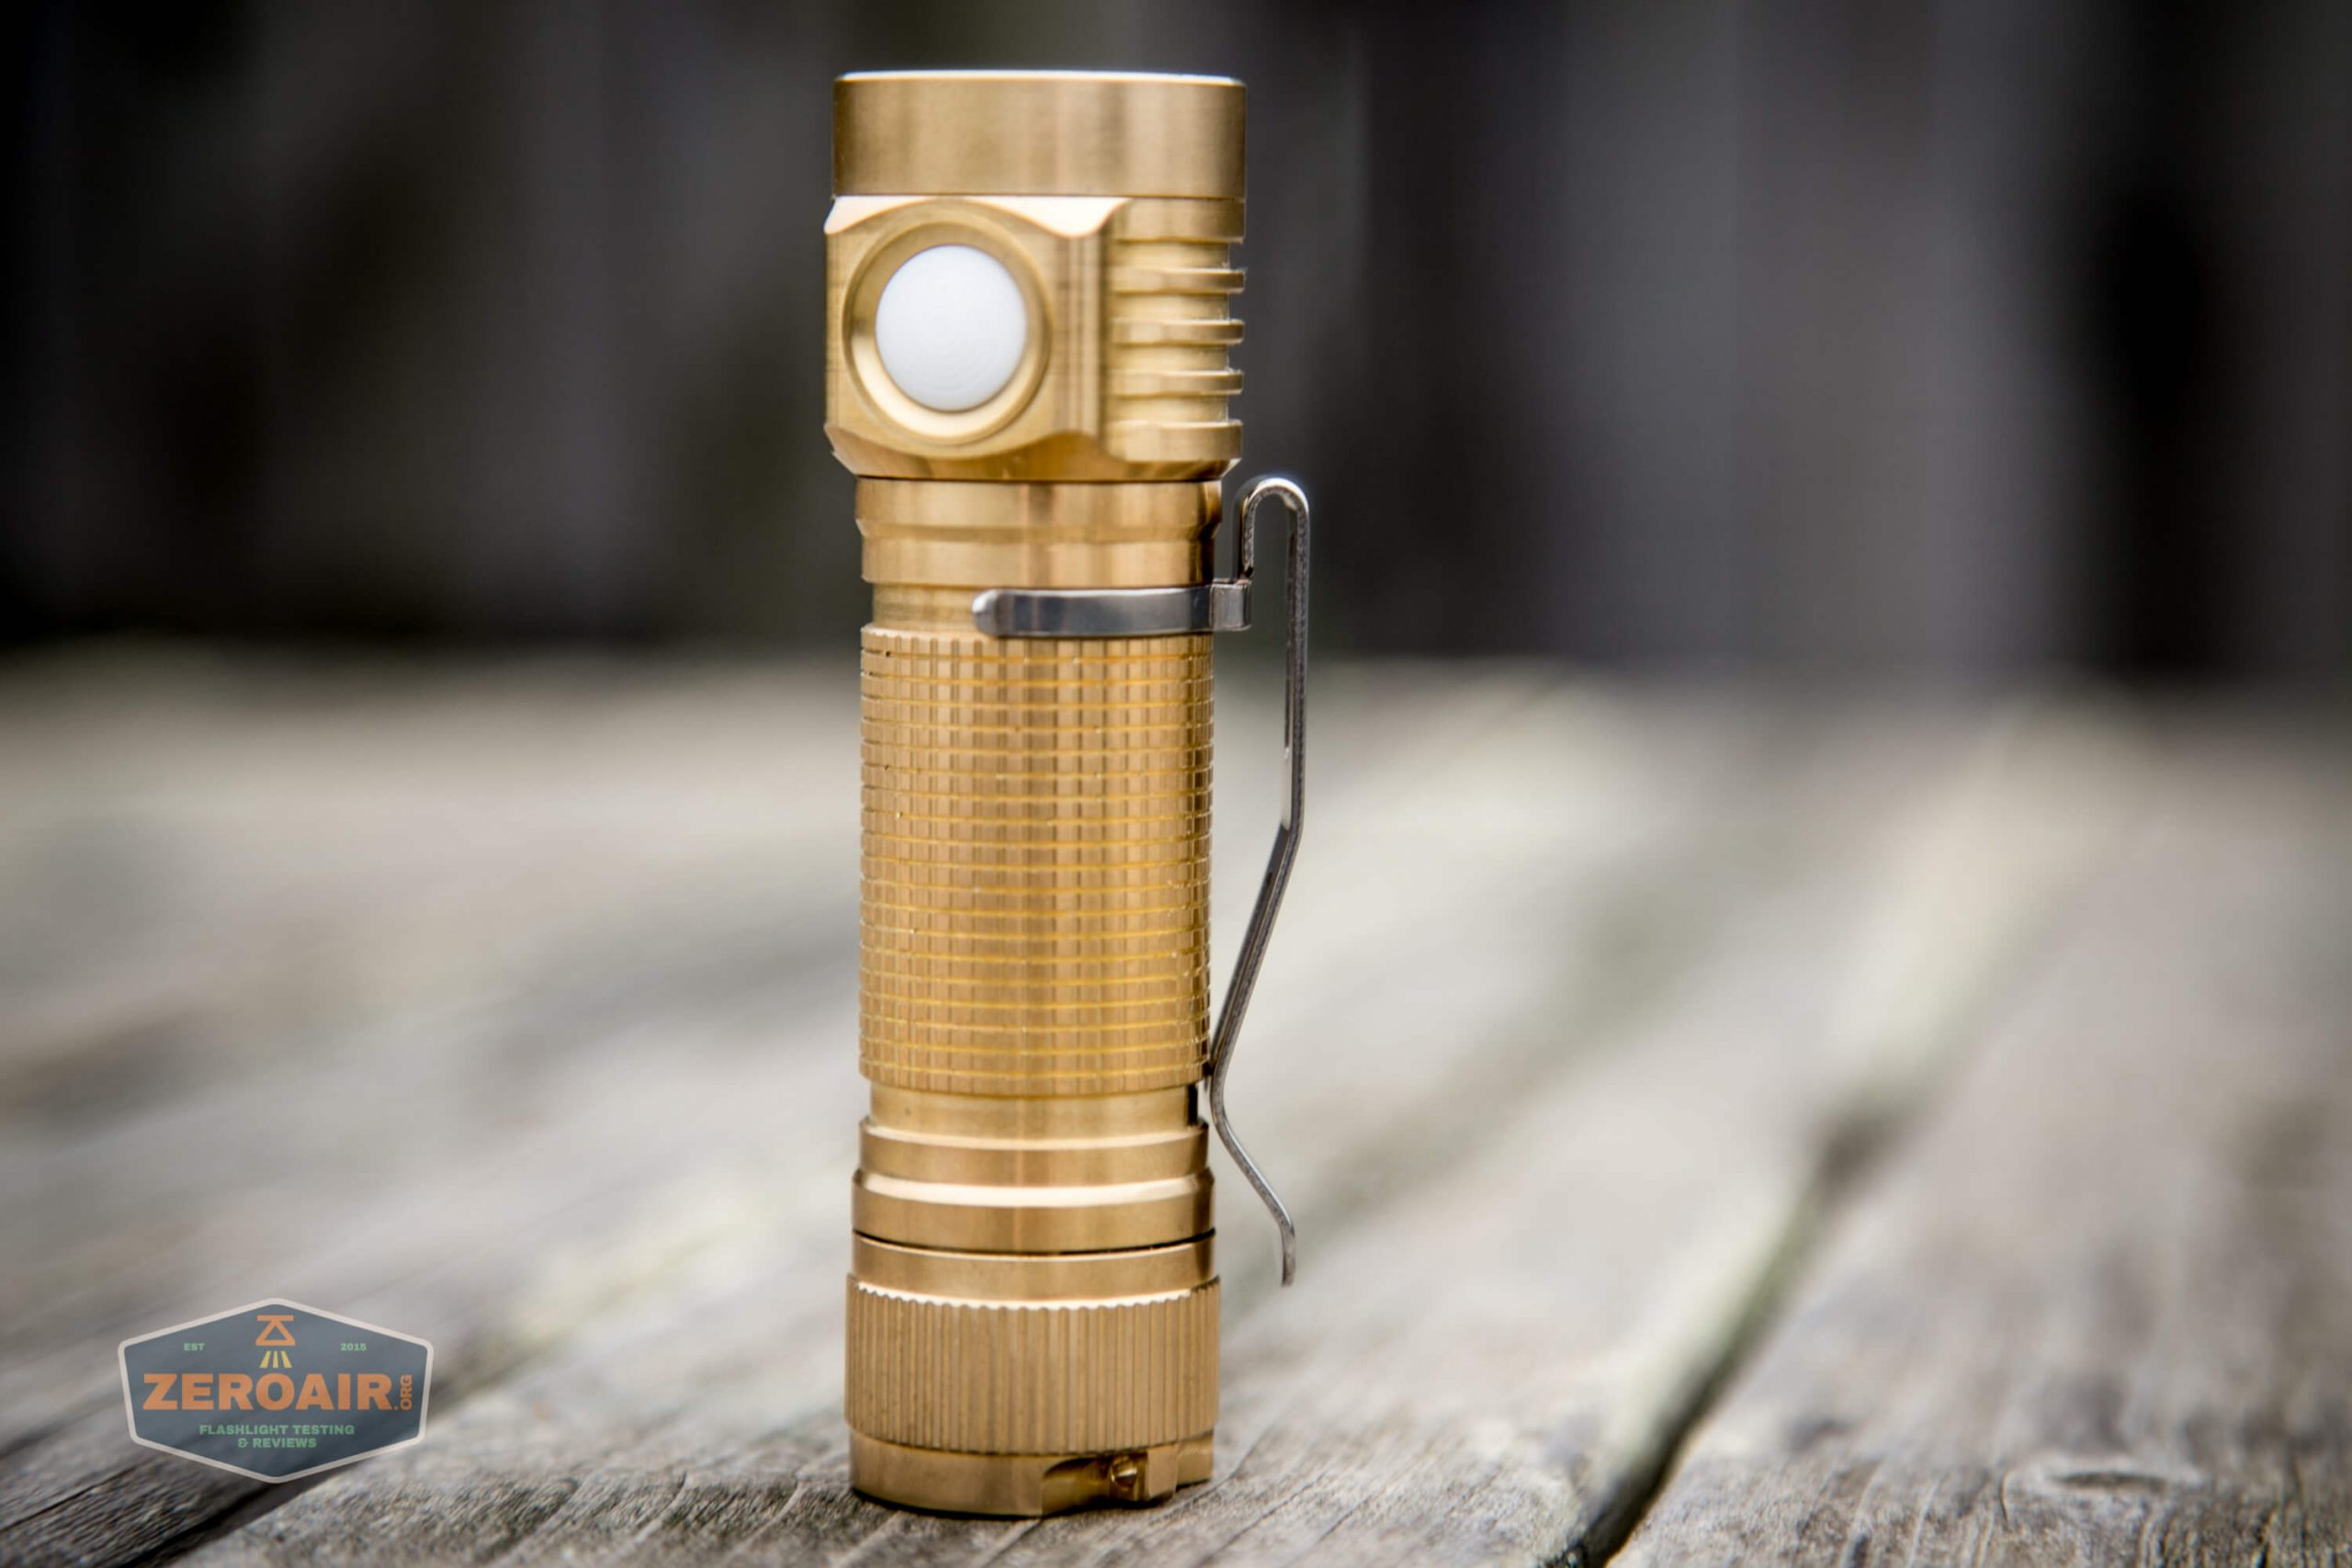 emisar d4v2 brass flashlight nichia e21a 4500K 18650 with pocket clip installed